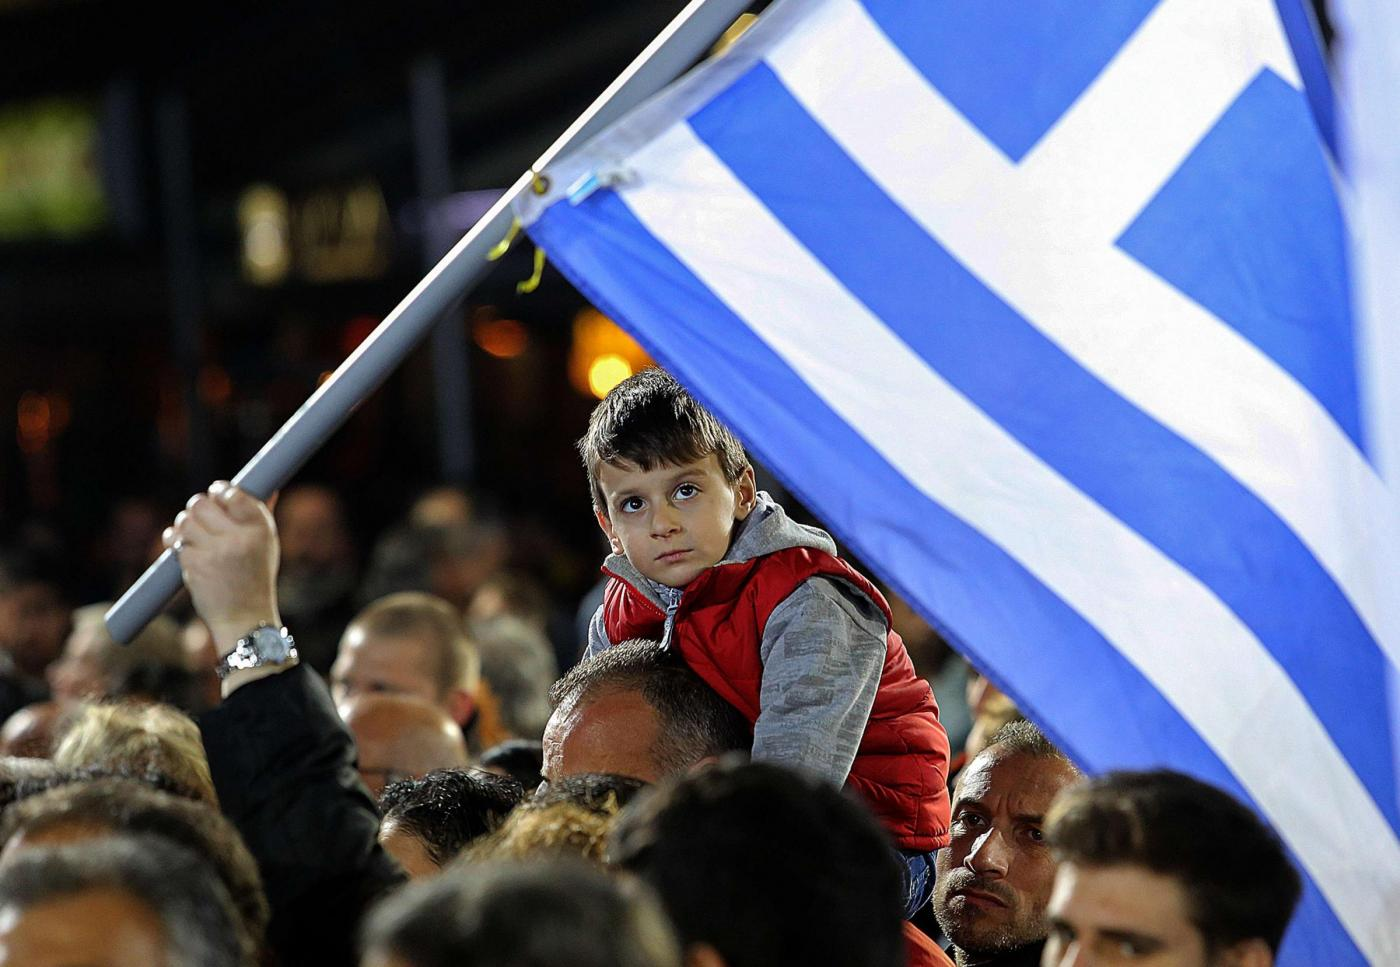 A child sitting on his father's shoulders attends a campaign rally by opposition leader and head of radical leftist Syriza party Alexis Tsipras in Heraklion, on the island of Crete